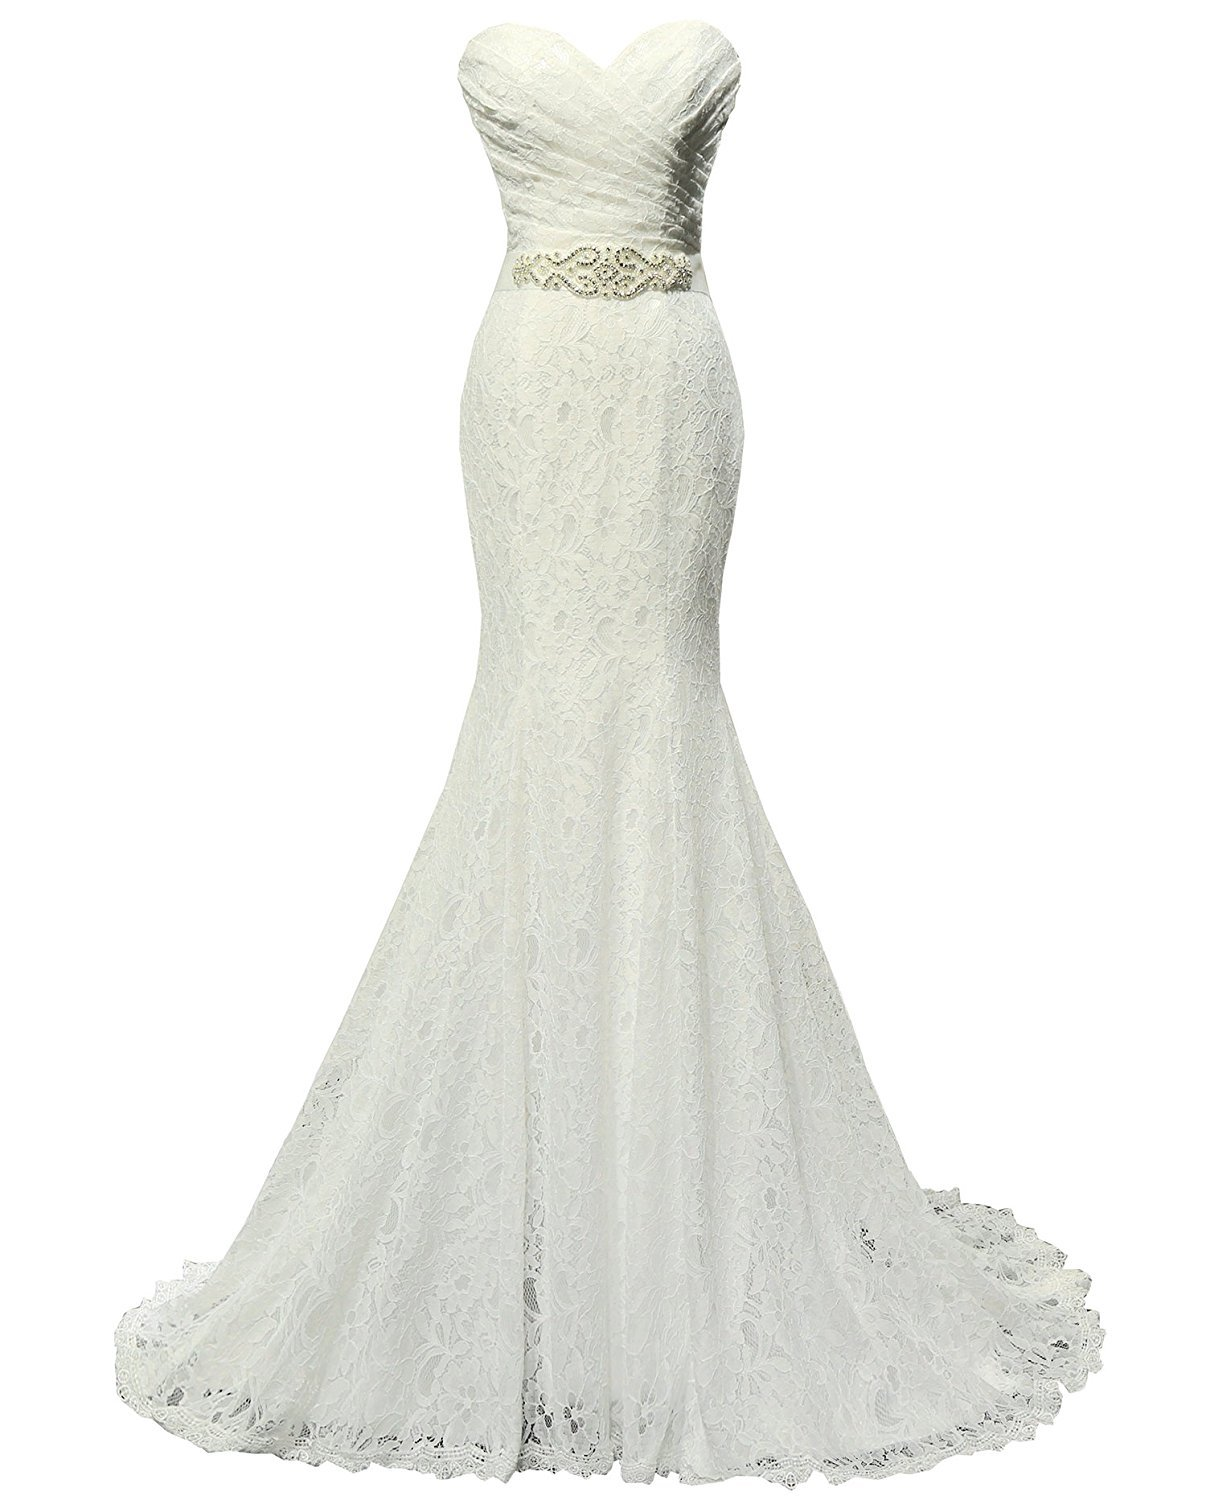 Solovedress Womens Lace Wedding Dress Mermaid Evening Bridal Gown With Sash